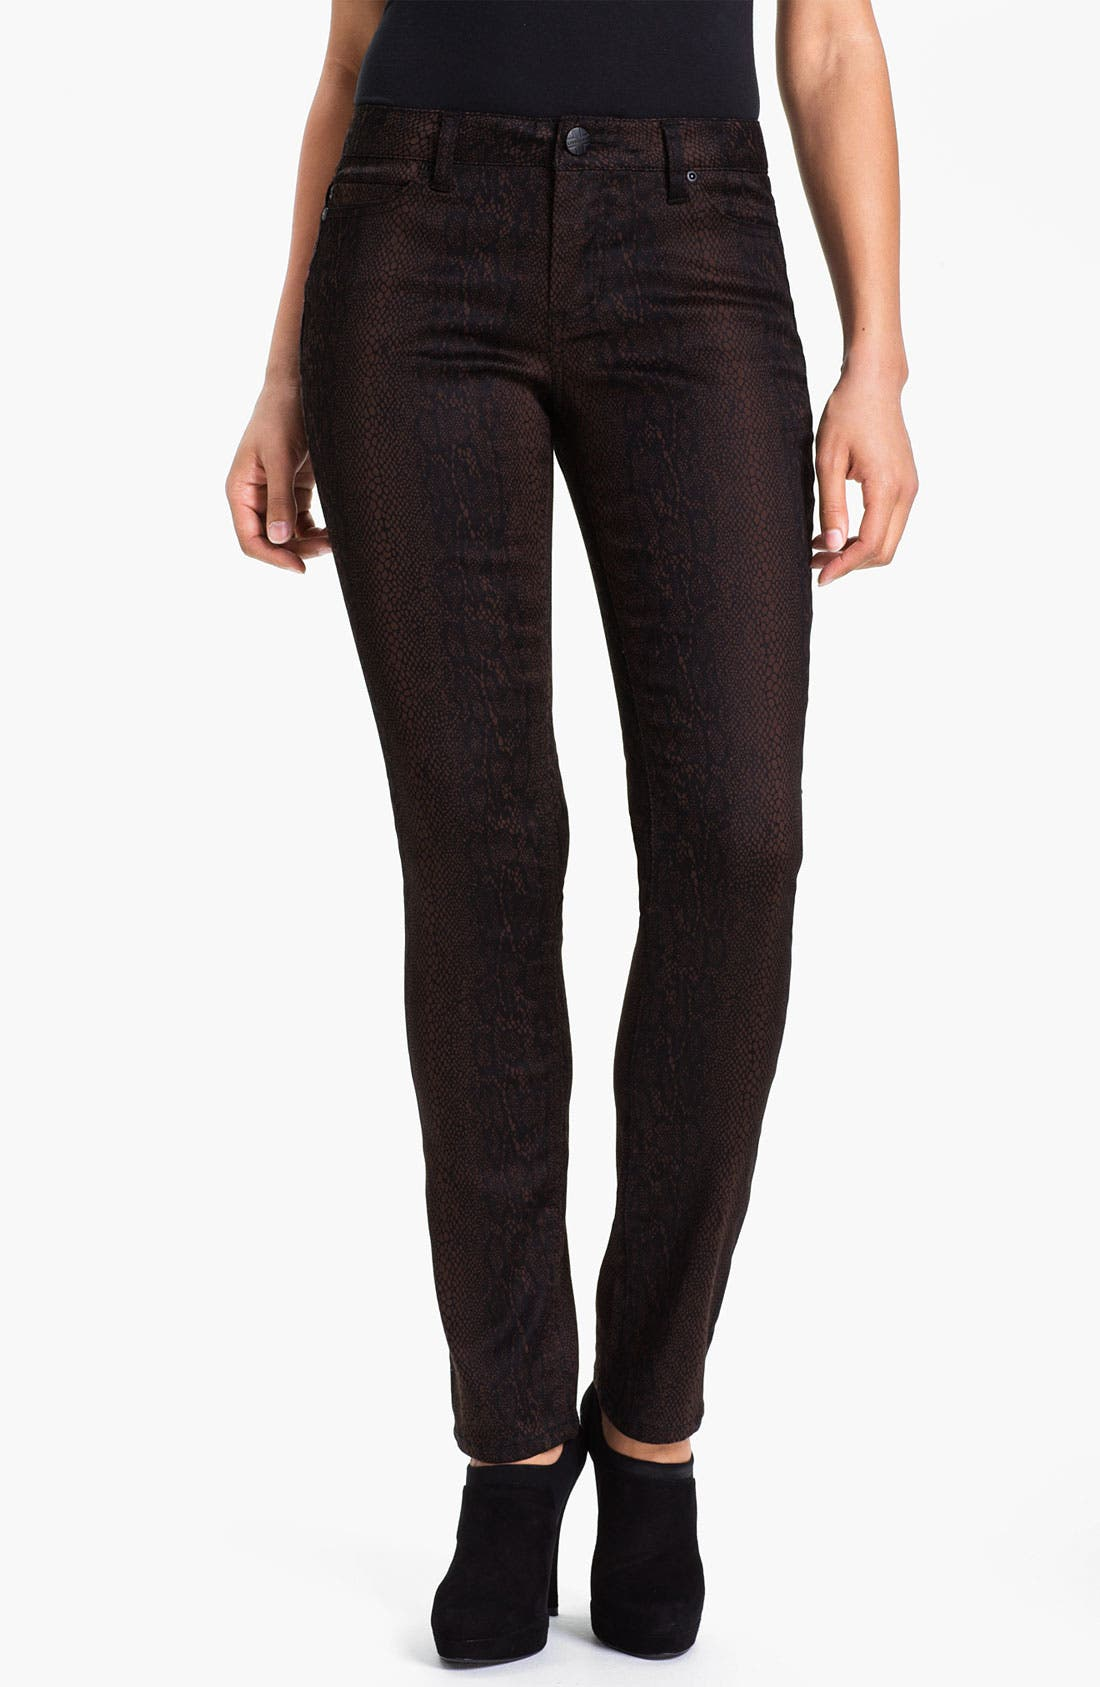 Main Image - Liverpool Jeans Company 'Sadie' Print Straight Leg Sateen Jeans (Petite) (Online Only)